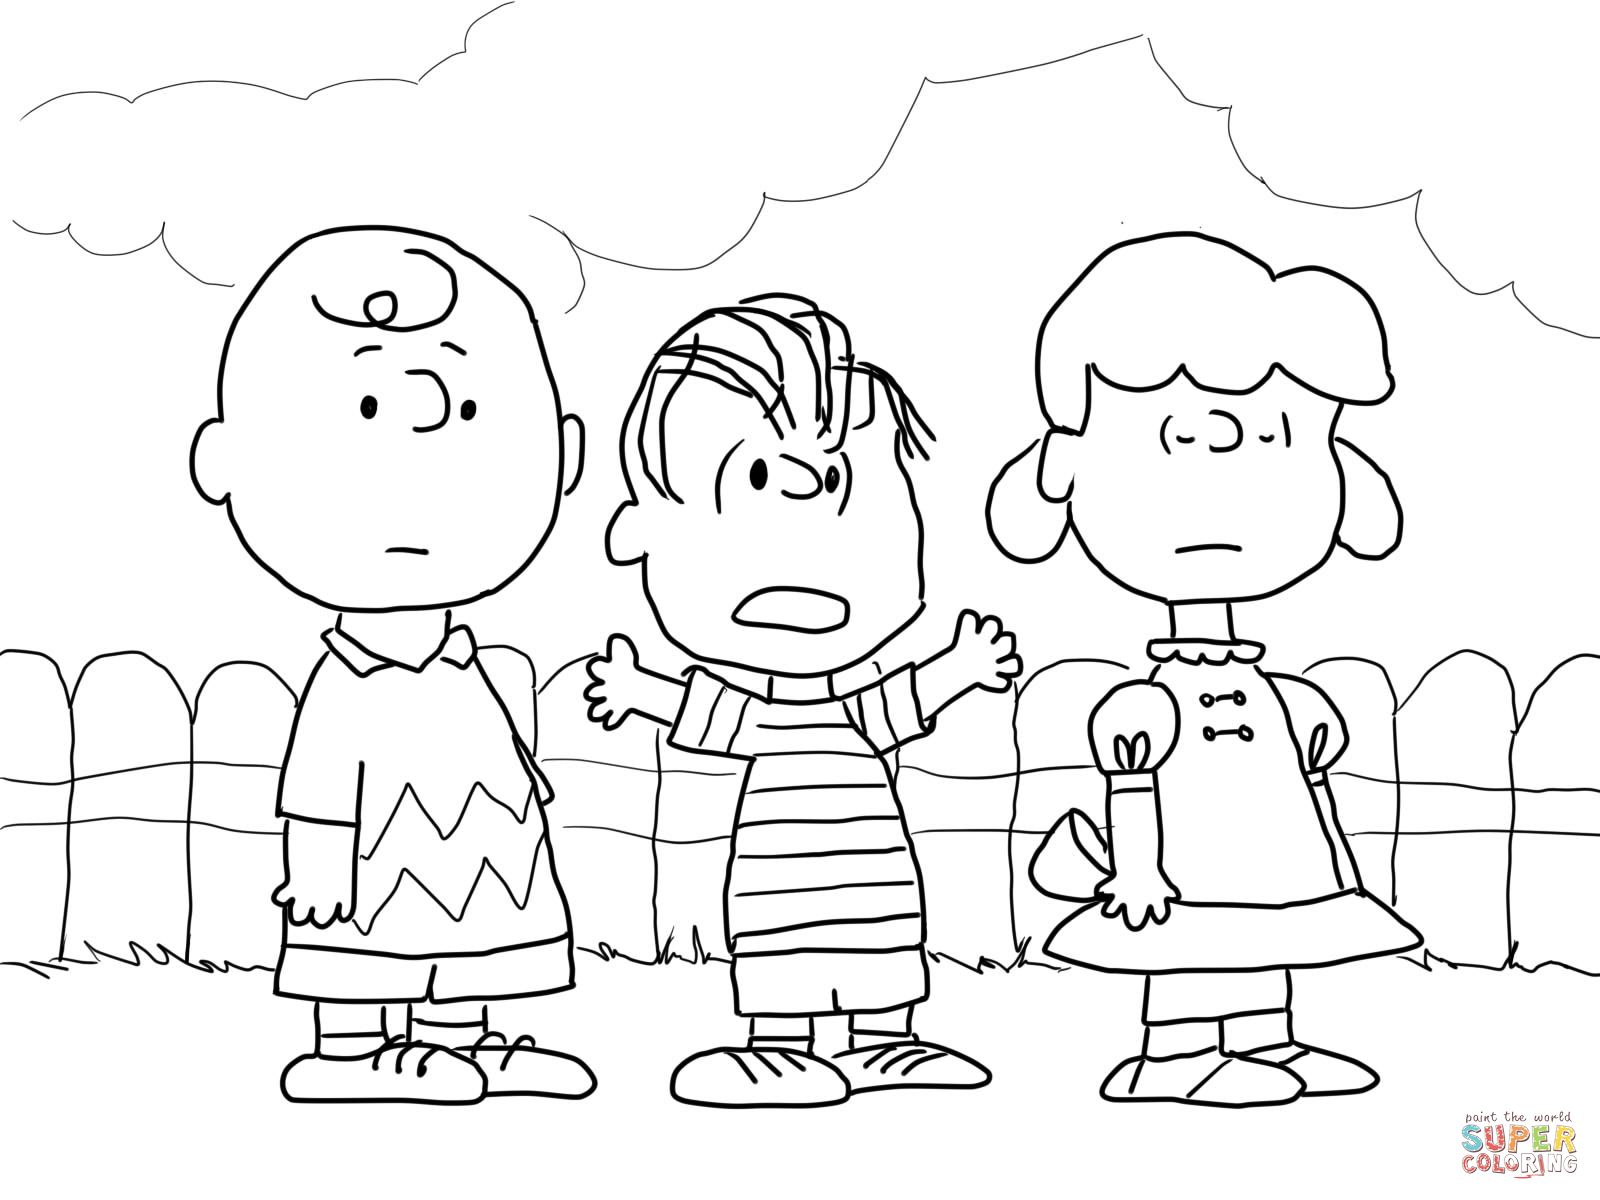 charlie brown lucy and linus coloring page supercoloring com